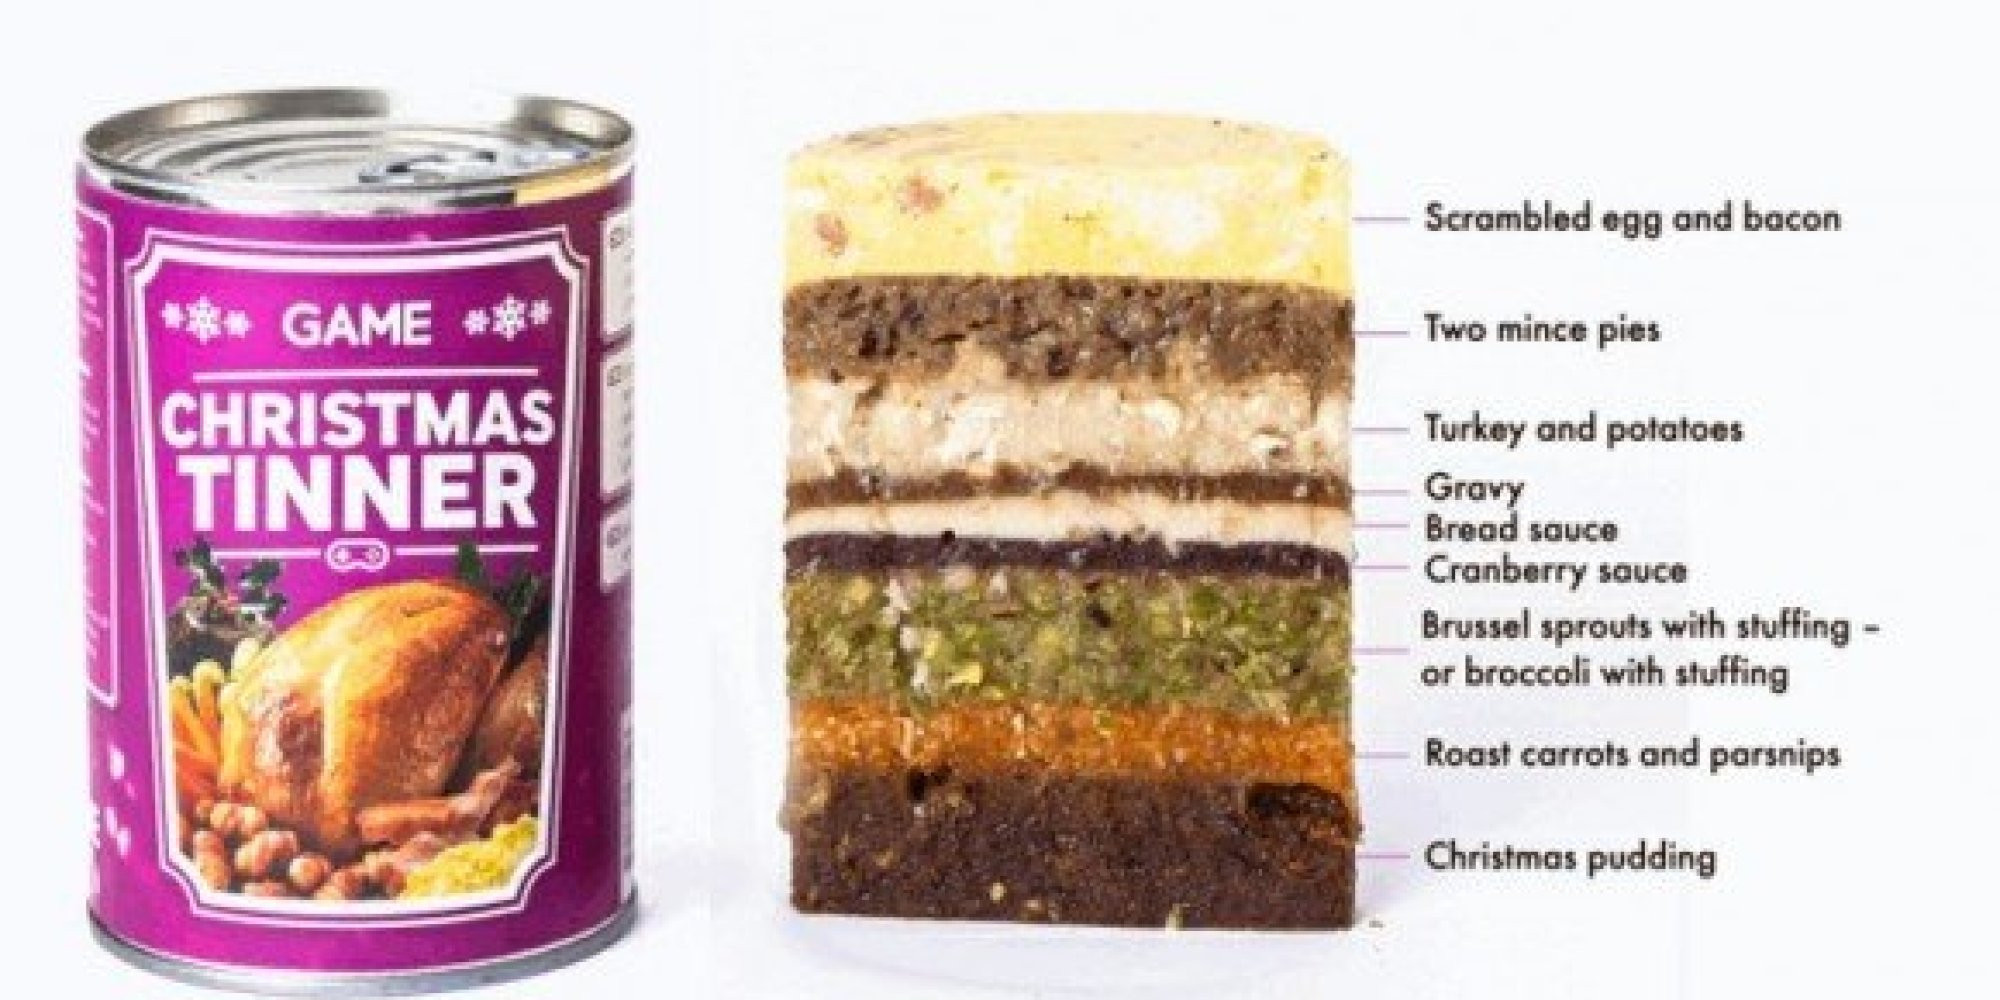 Craigs Thanksgiving Dinner In A Can  The Christmas Tinner Is The Most Unappetizing Dinner